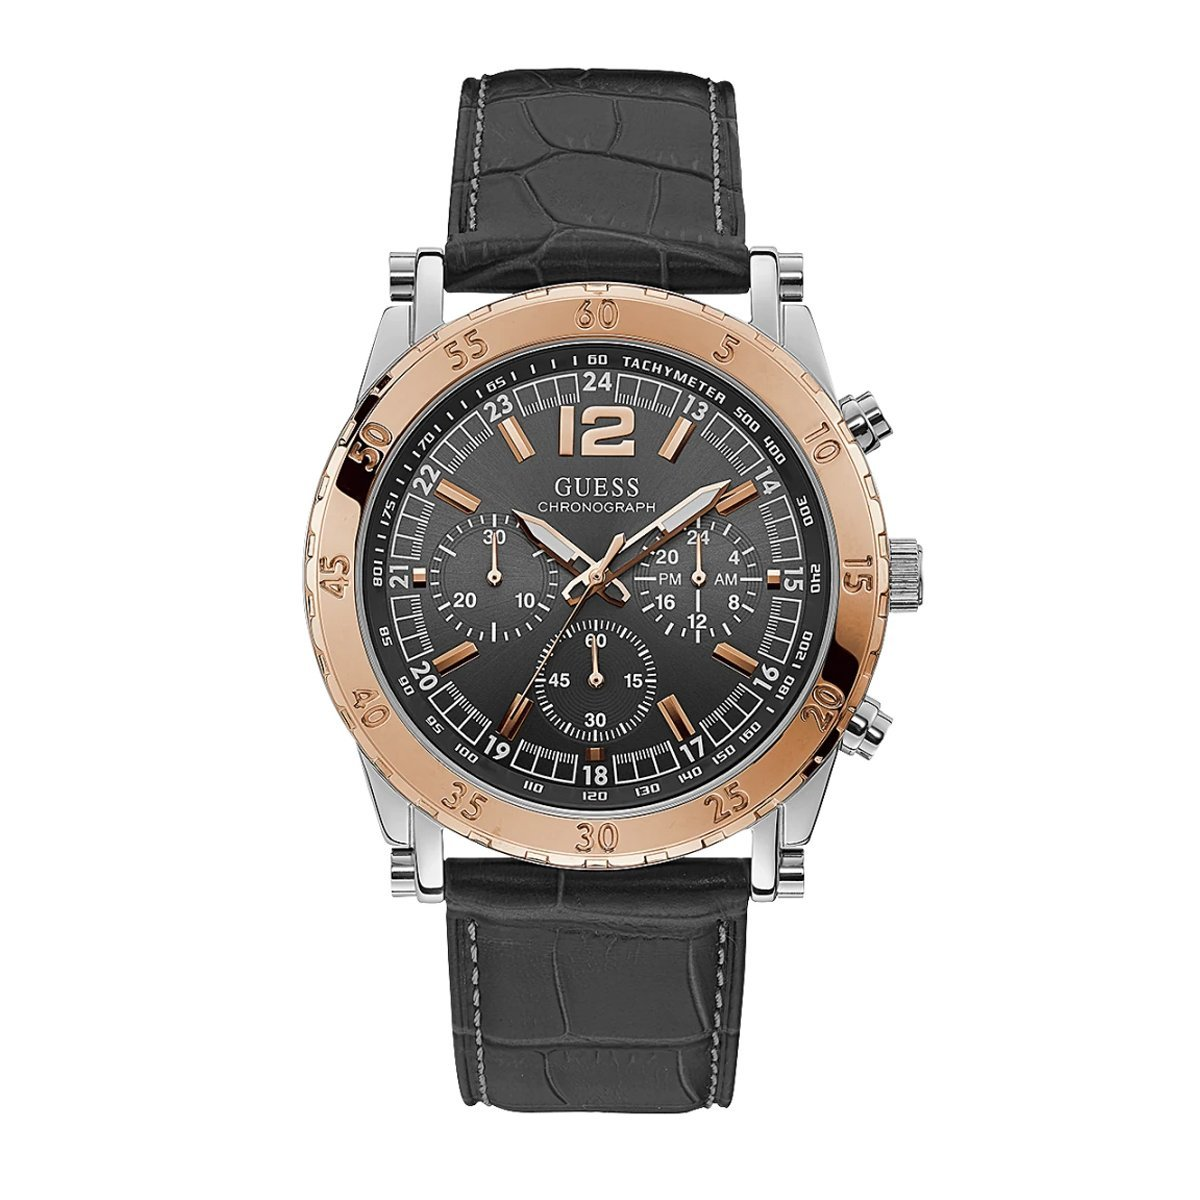 Guess Valor Chronograph Two Tone - Watches & Crystals